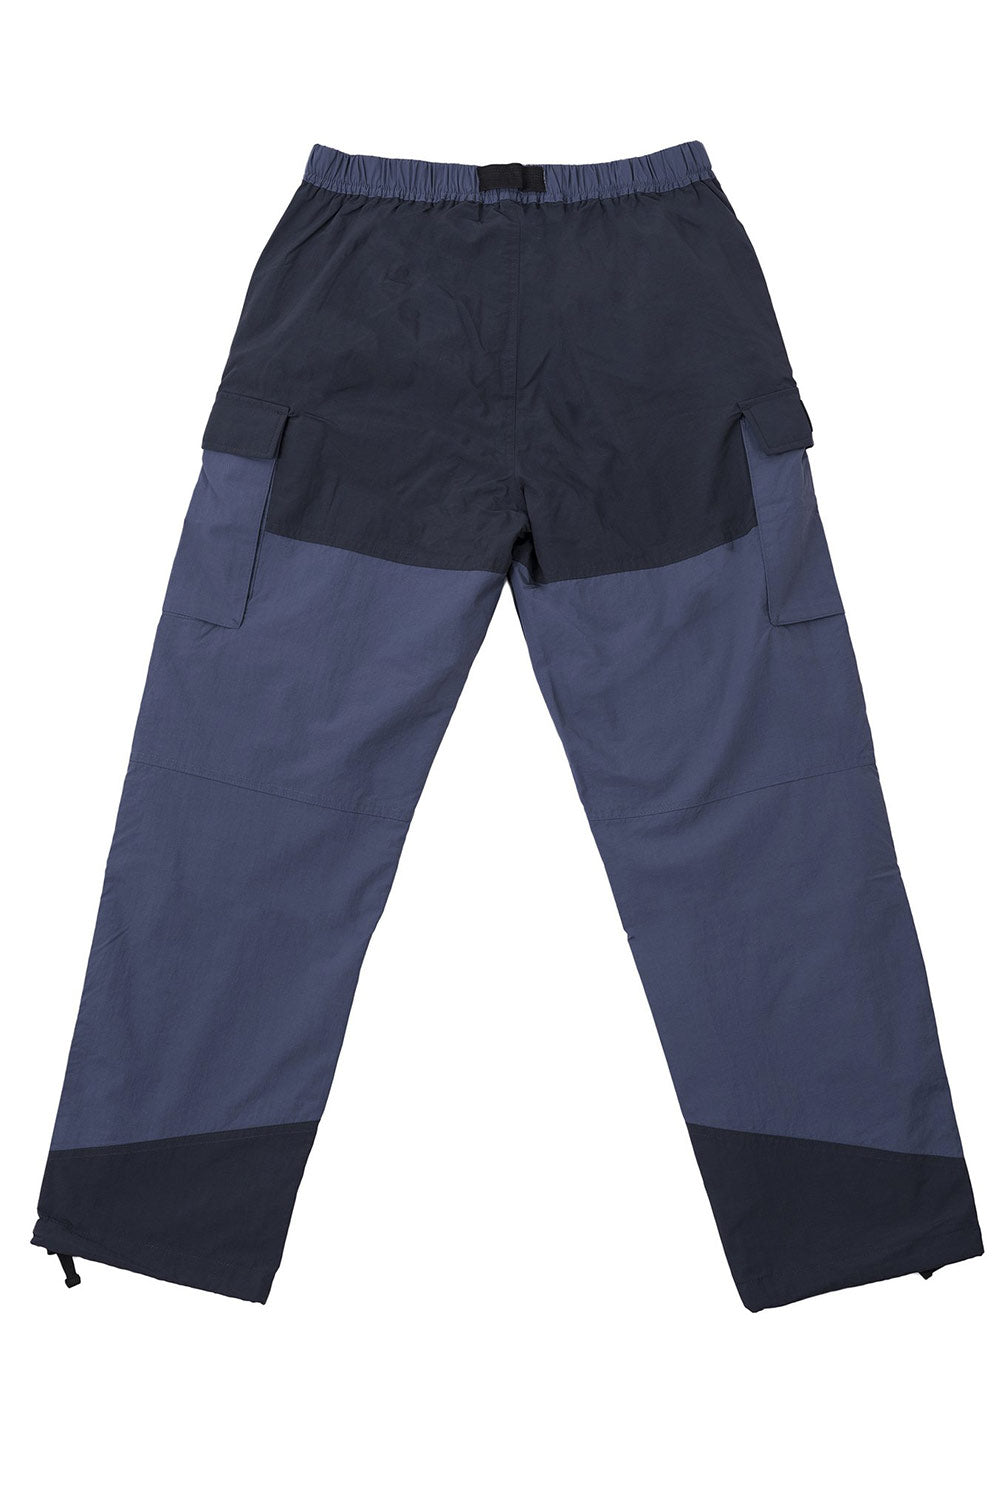 Bronze 56K Hard Wear Cargo Pants - Dark Navy